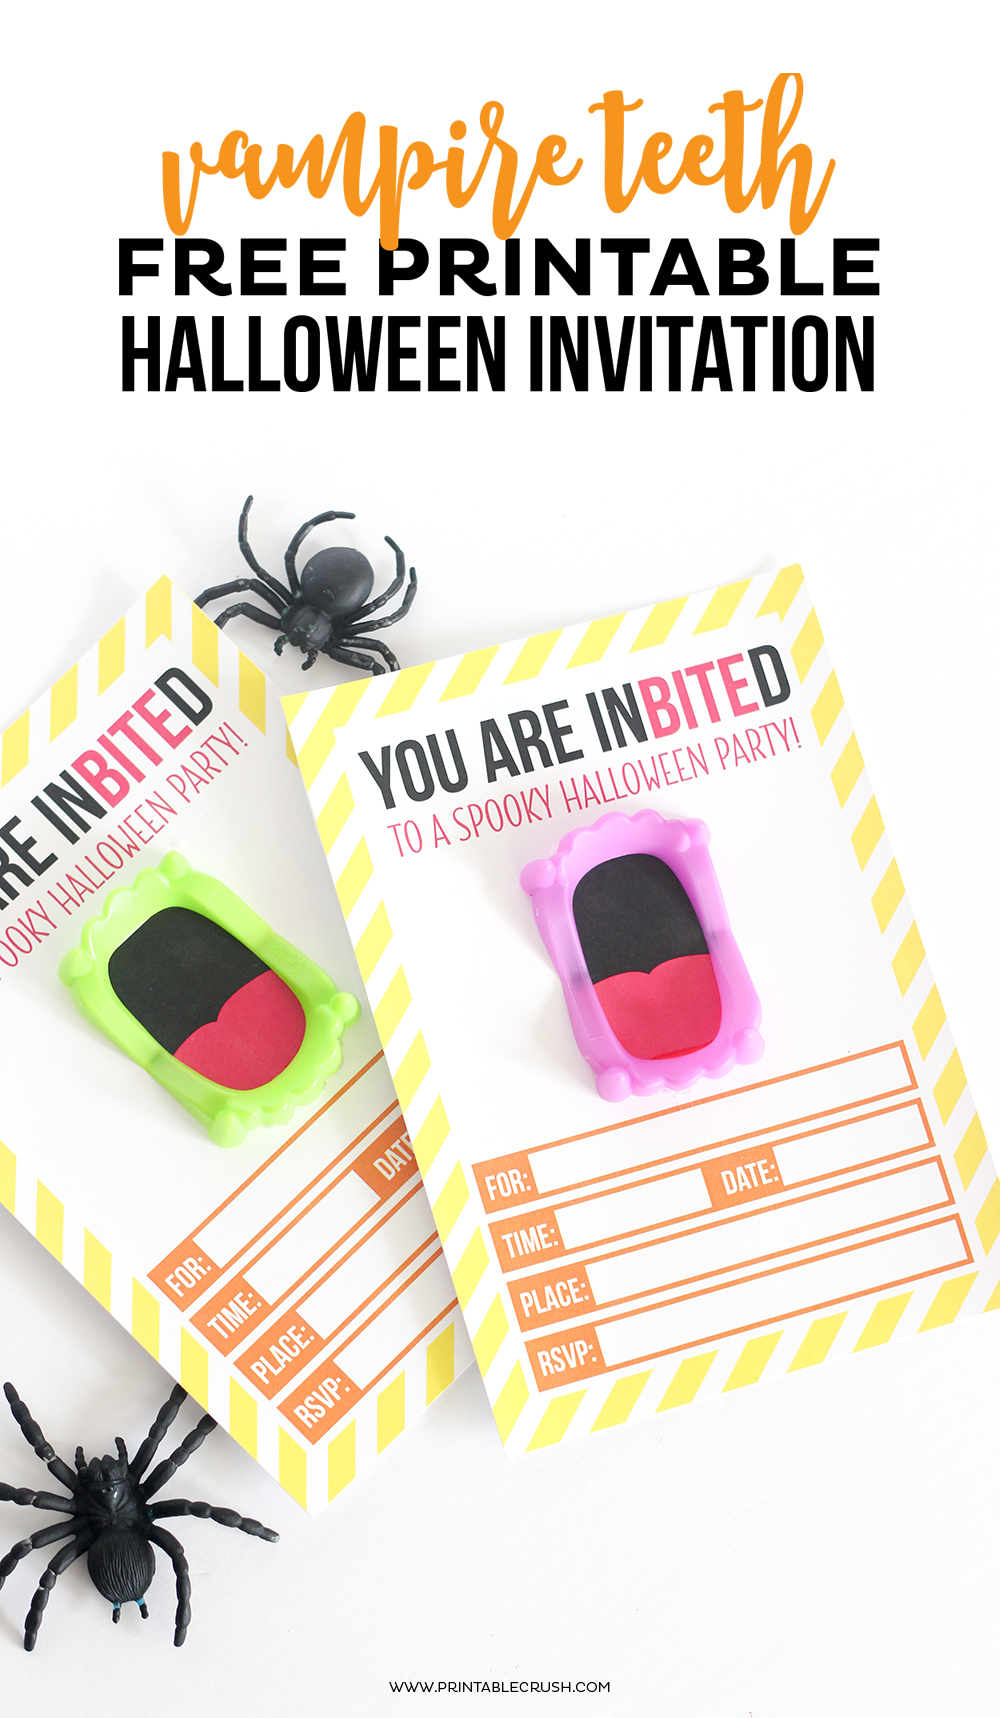 Download This FREE Printable Vampire Halloween Invitation For Your Party Its A Fun